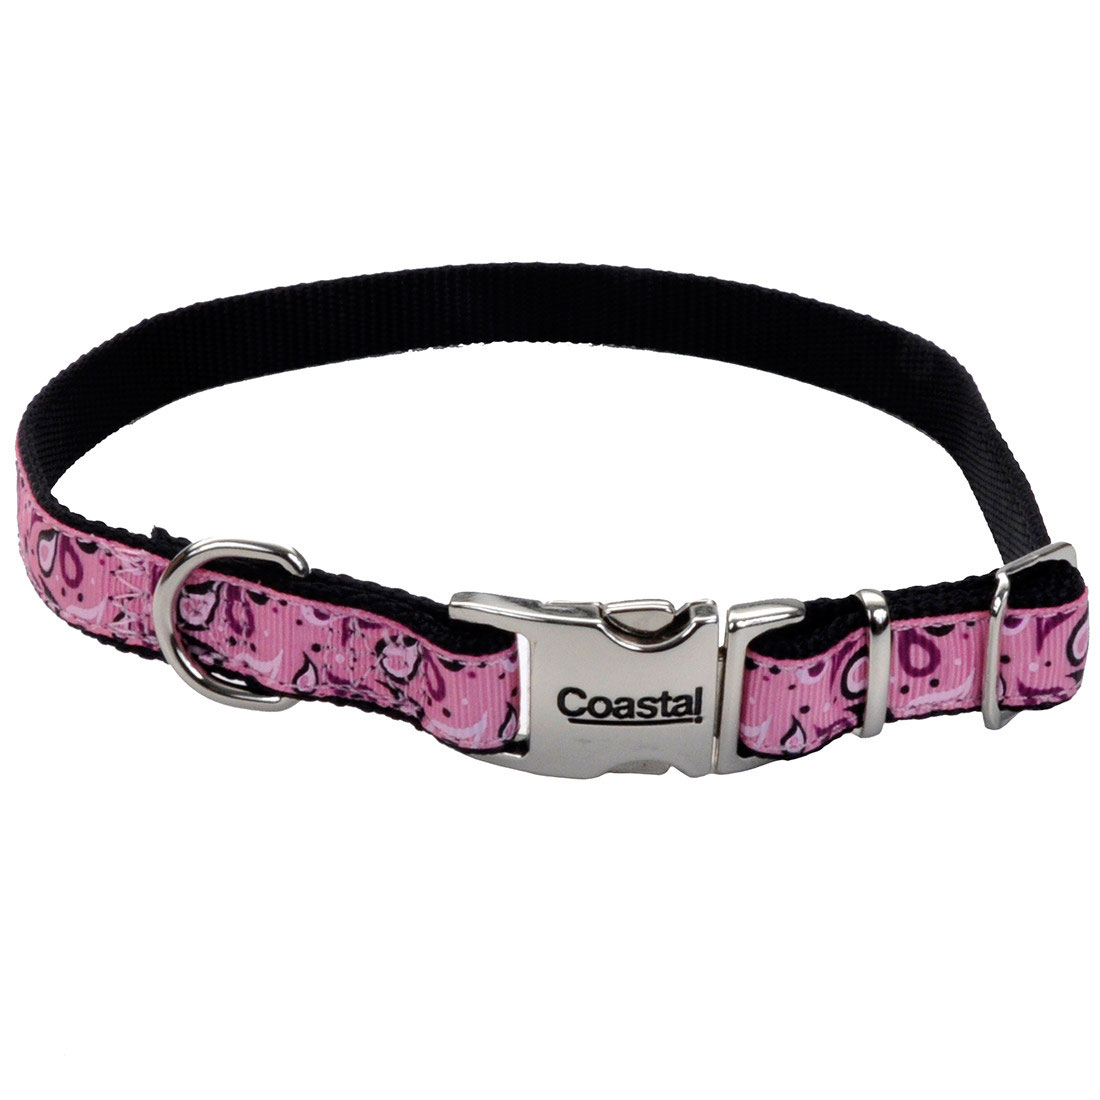 Ribbon Adjustable Collar with Metal Buckle for Dogs, Pink Paisley Image